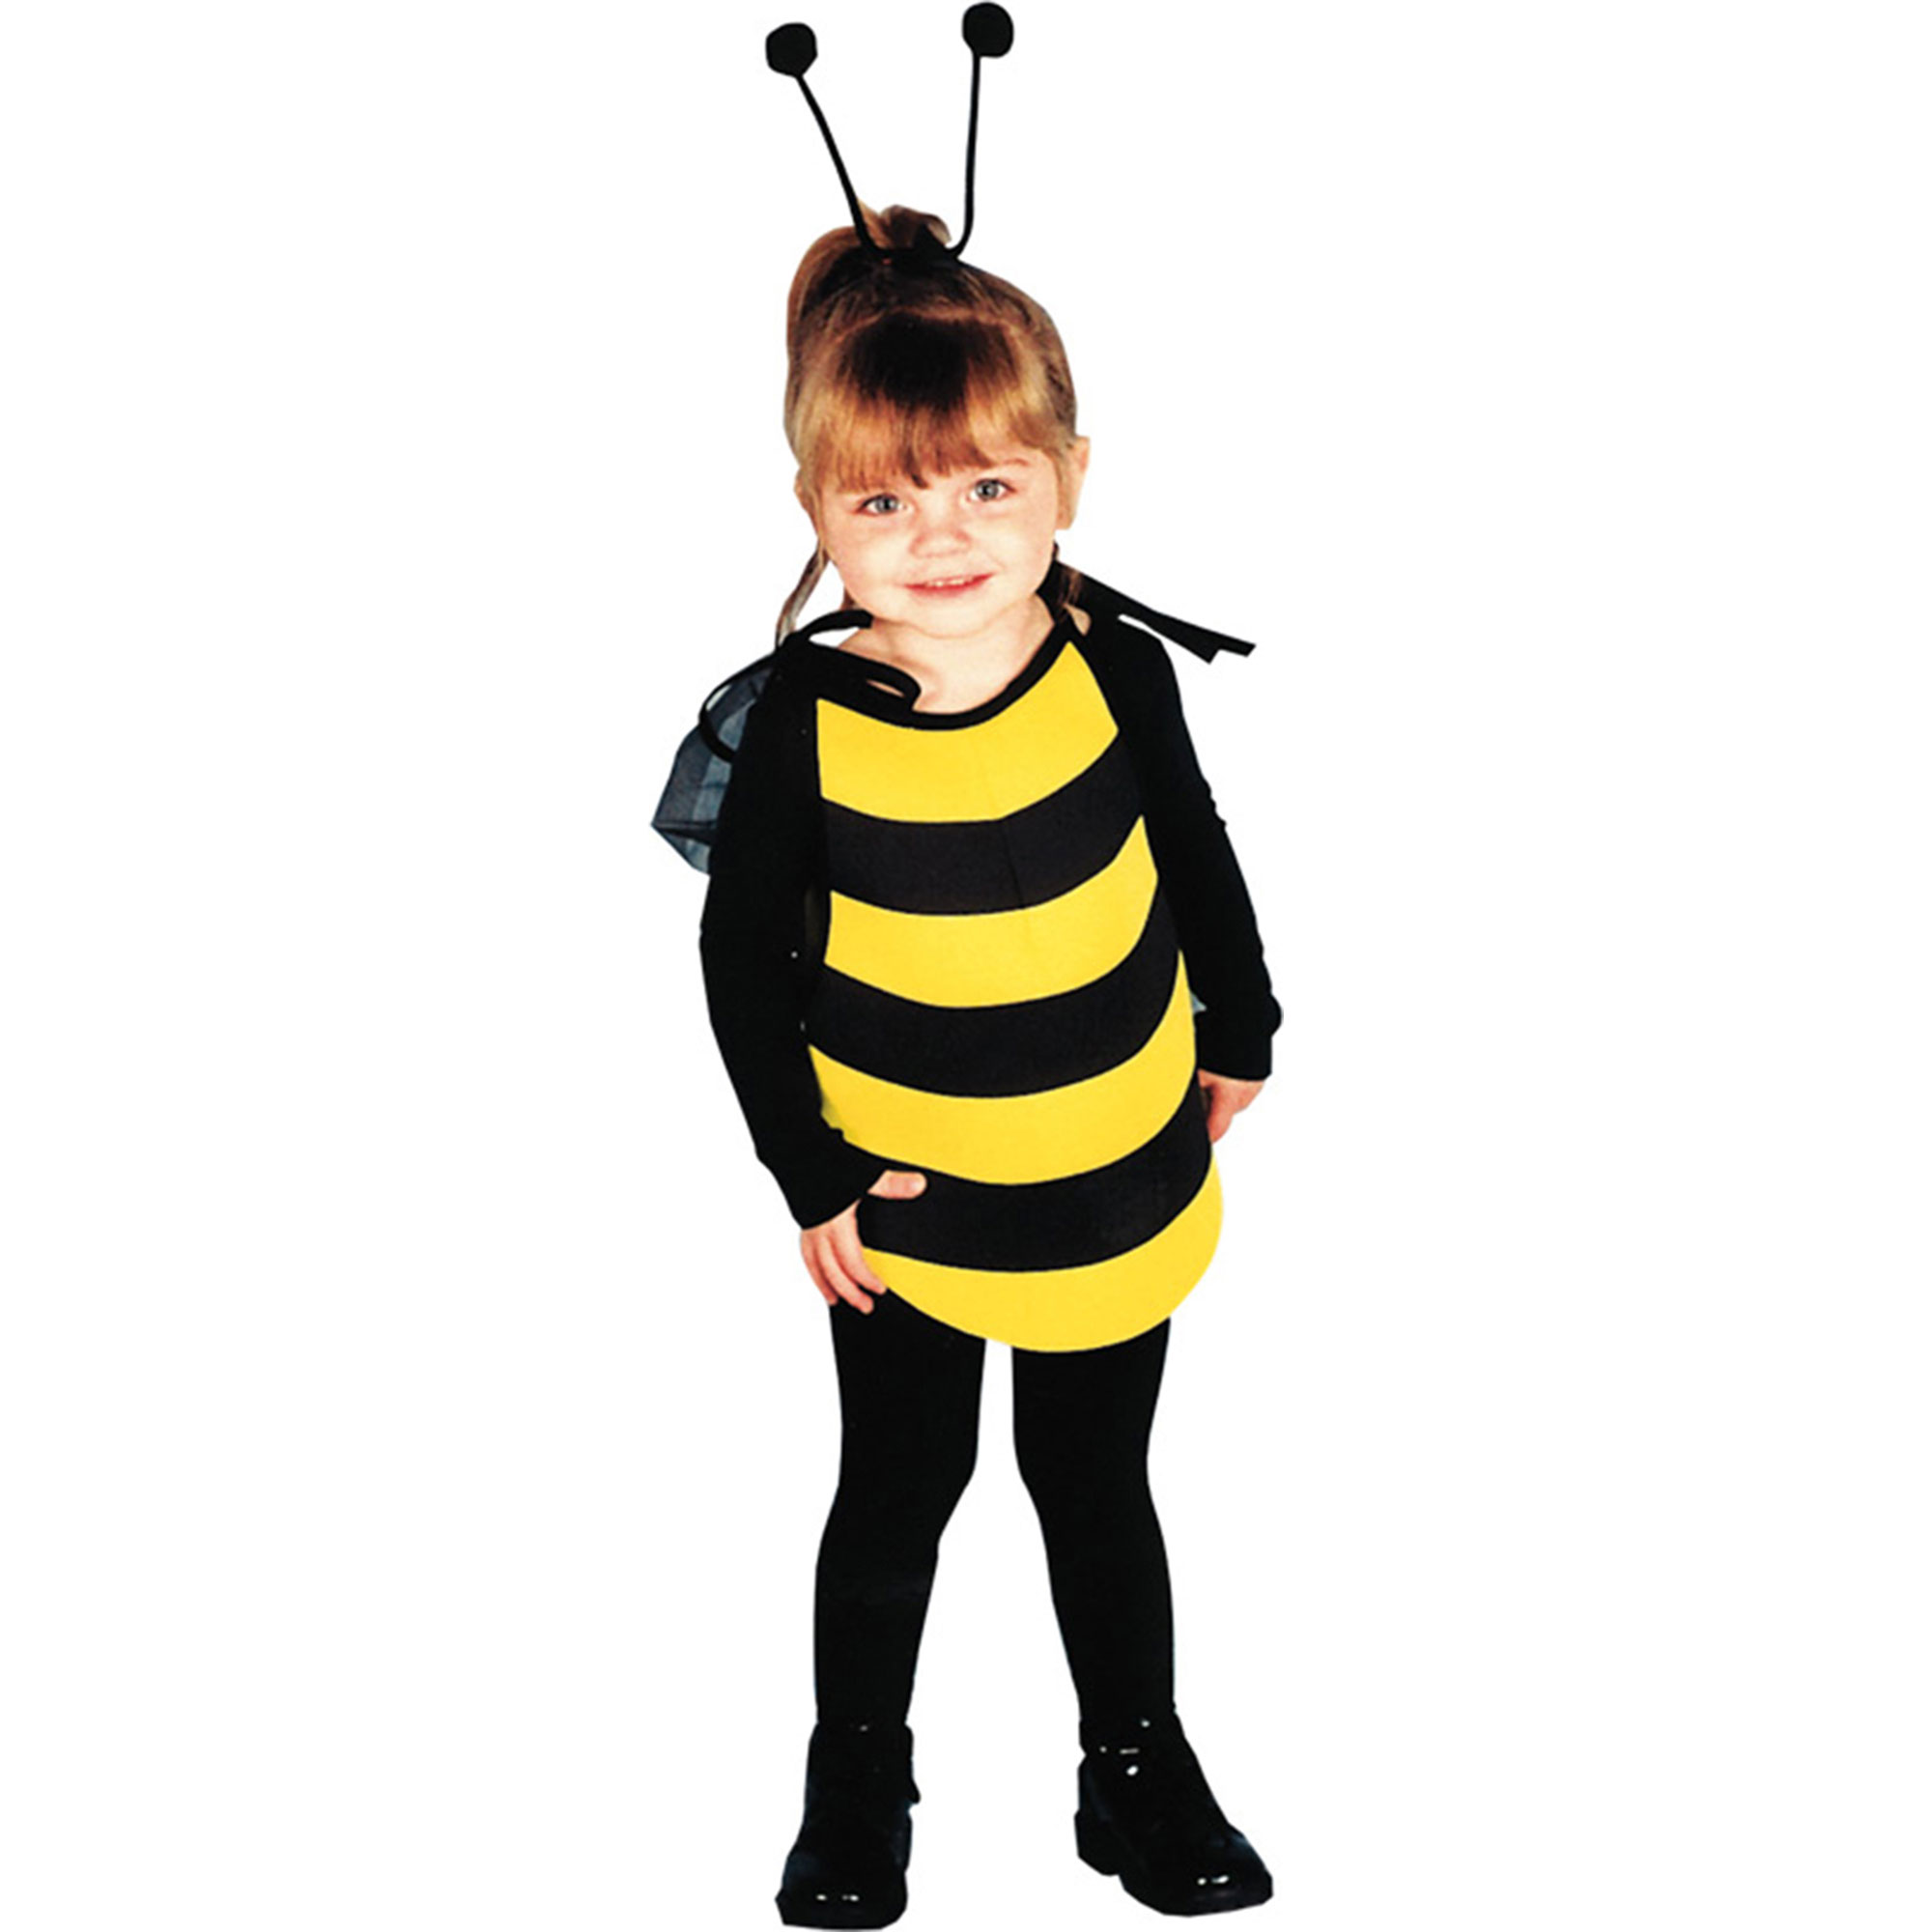 Morris Costumes Easy To Wear Soft Fabric Bumble Bee My 1St Costume, Style 13501